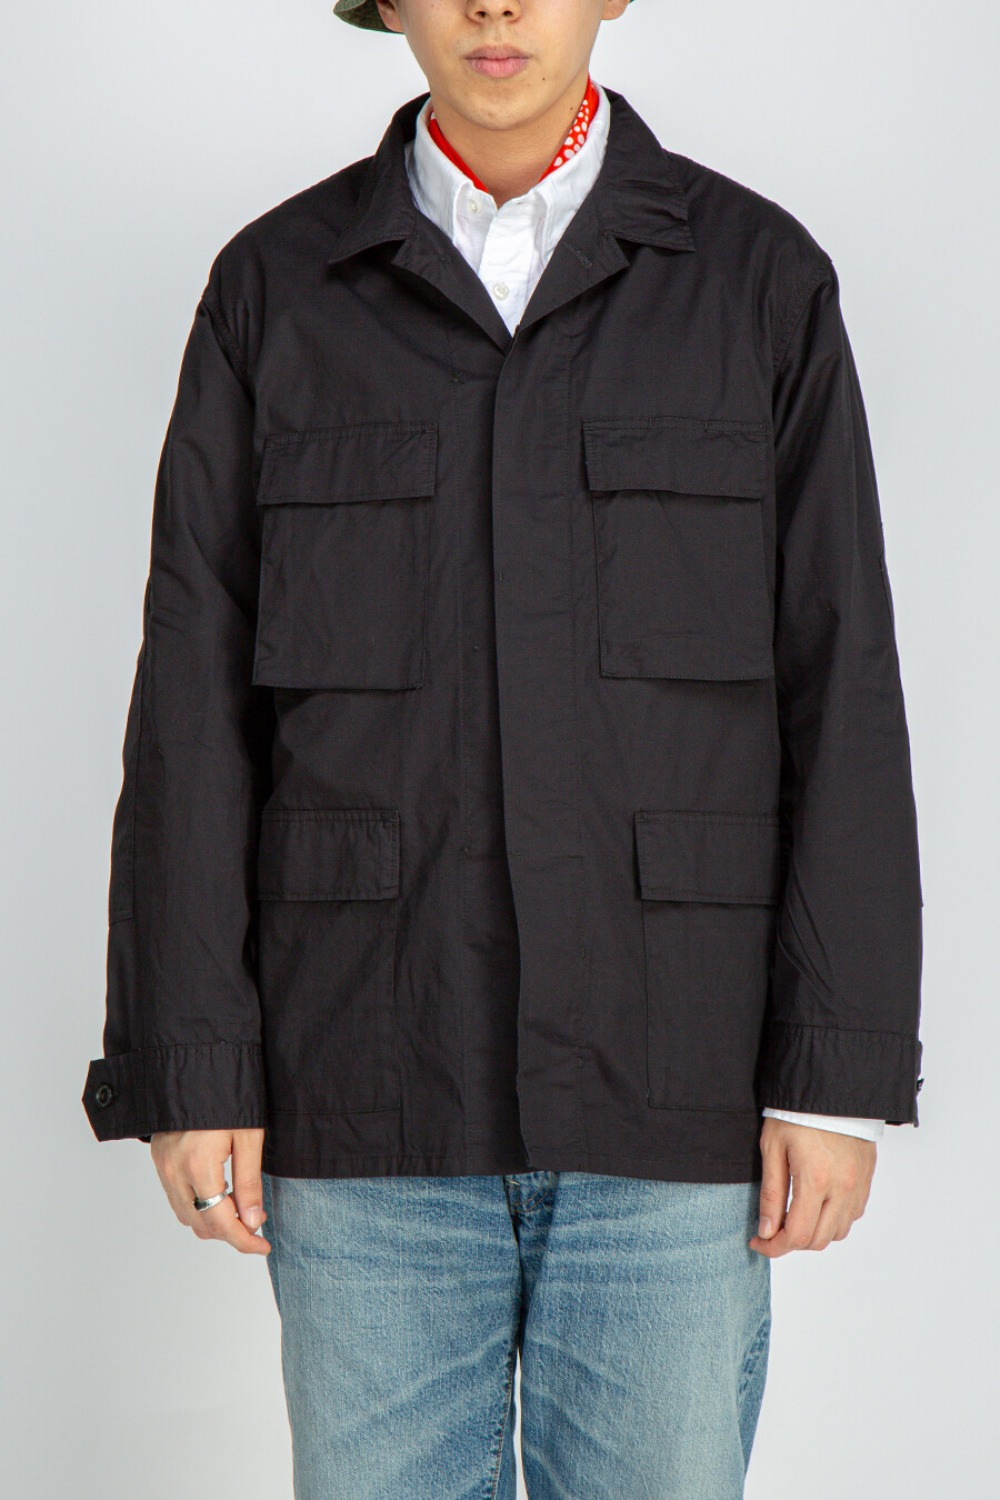 BDU JACKET HIGHCOUNT TWILL BLACK